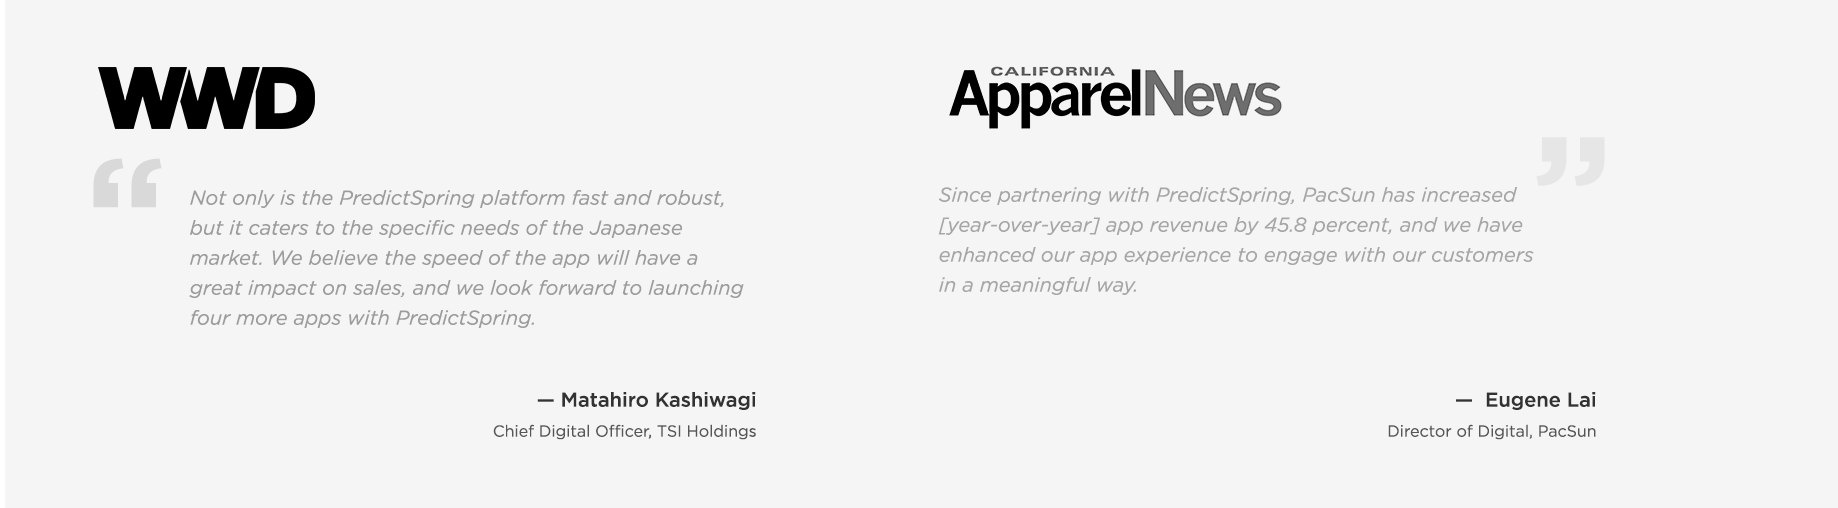 Salesforce Commerce Cloud Customers Quotes (TSI and PacSun) on PredictSpring Platform in WWD and California Apparel News